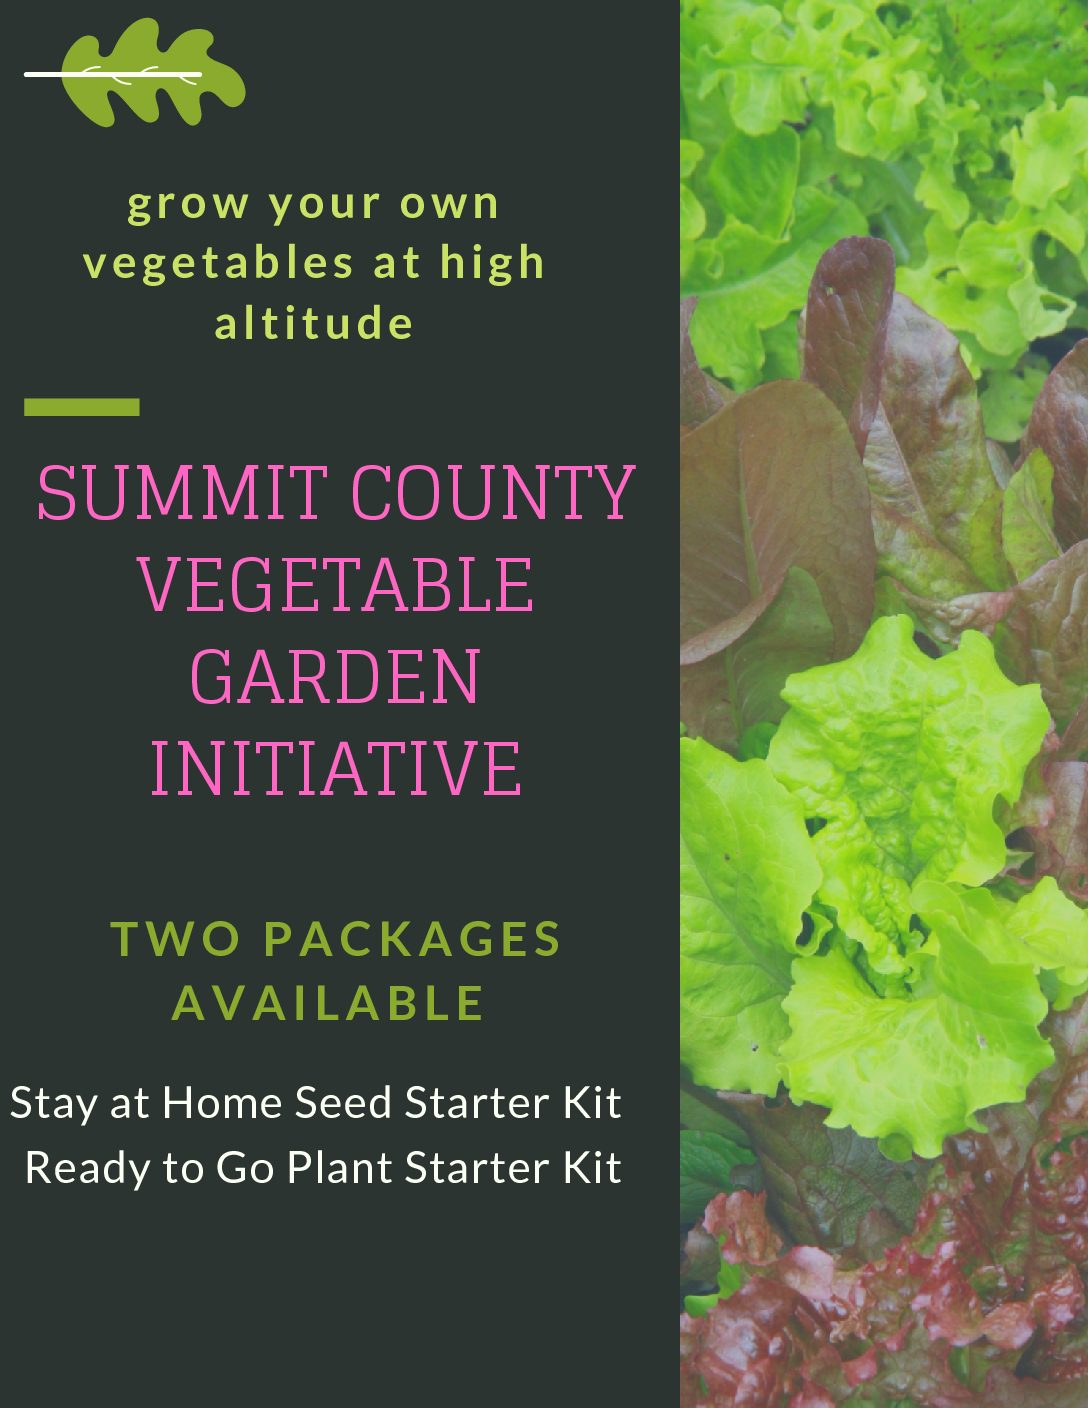 Summit County Vegetable Garden Initiative